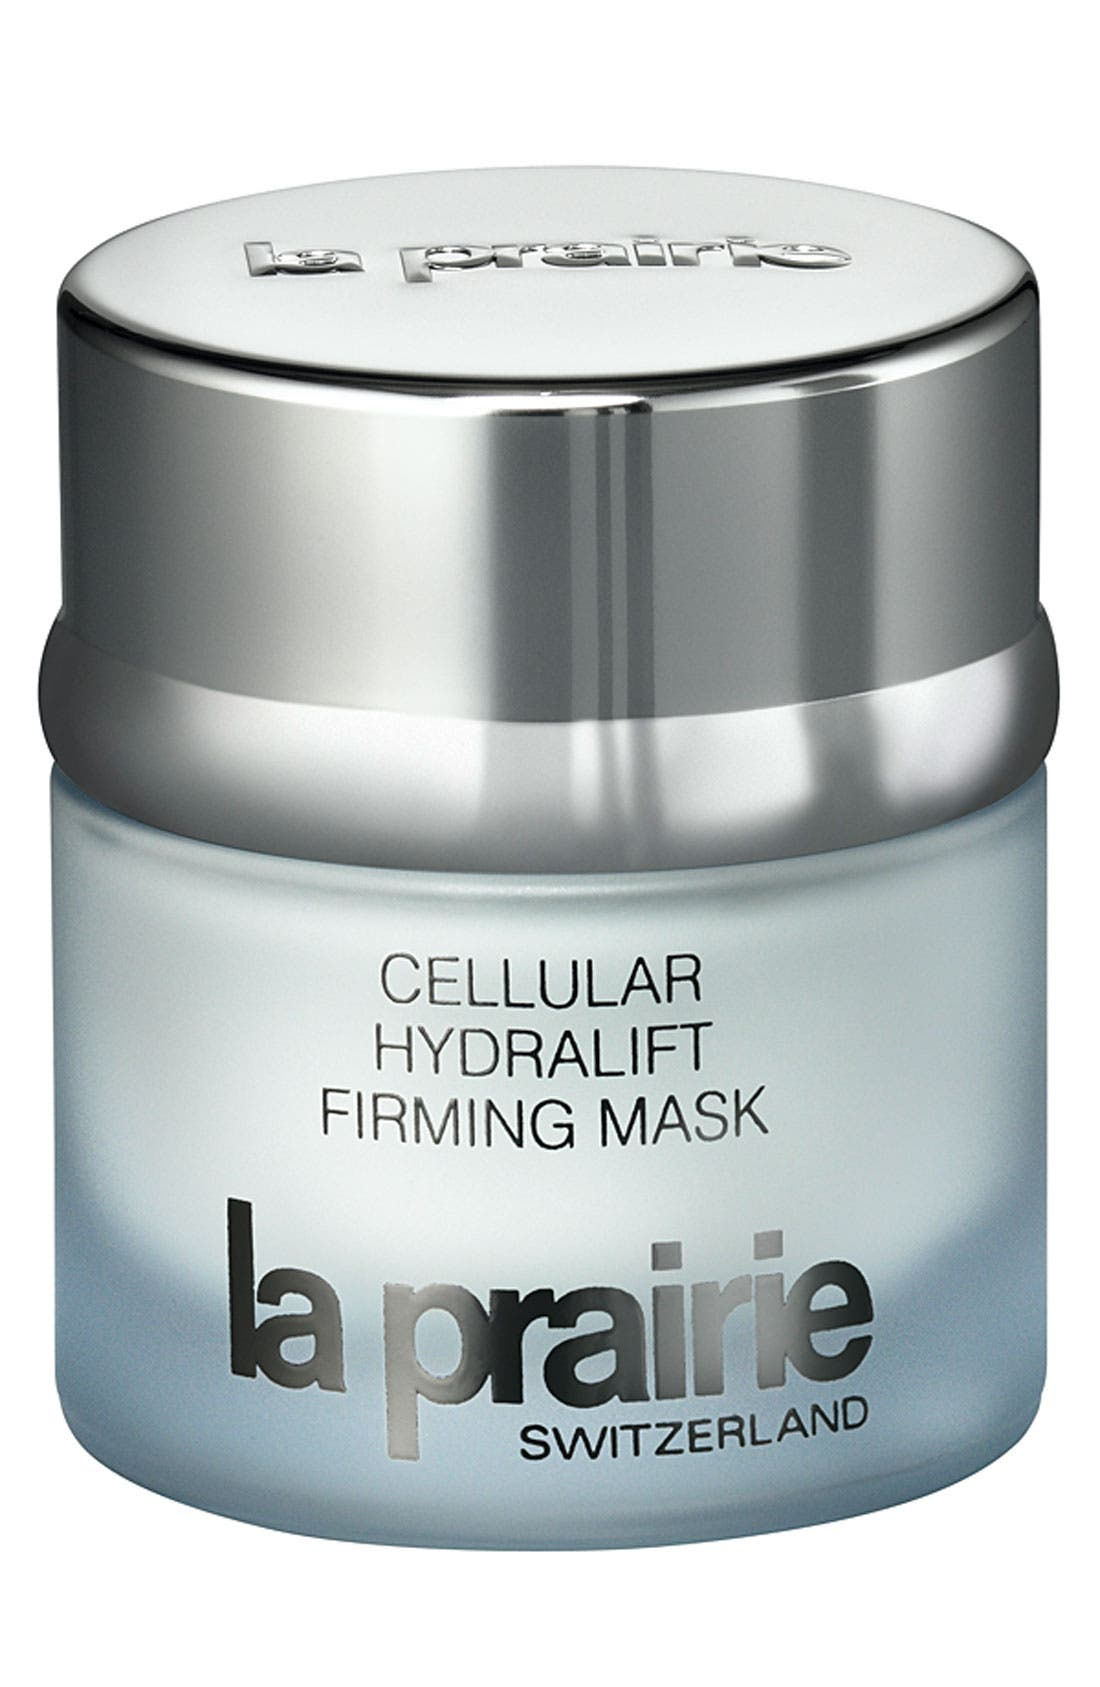 Cellular Hydralift Firming Mask,                         Main,                         color, NO COLOR